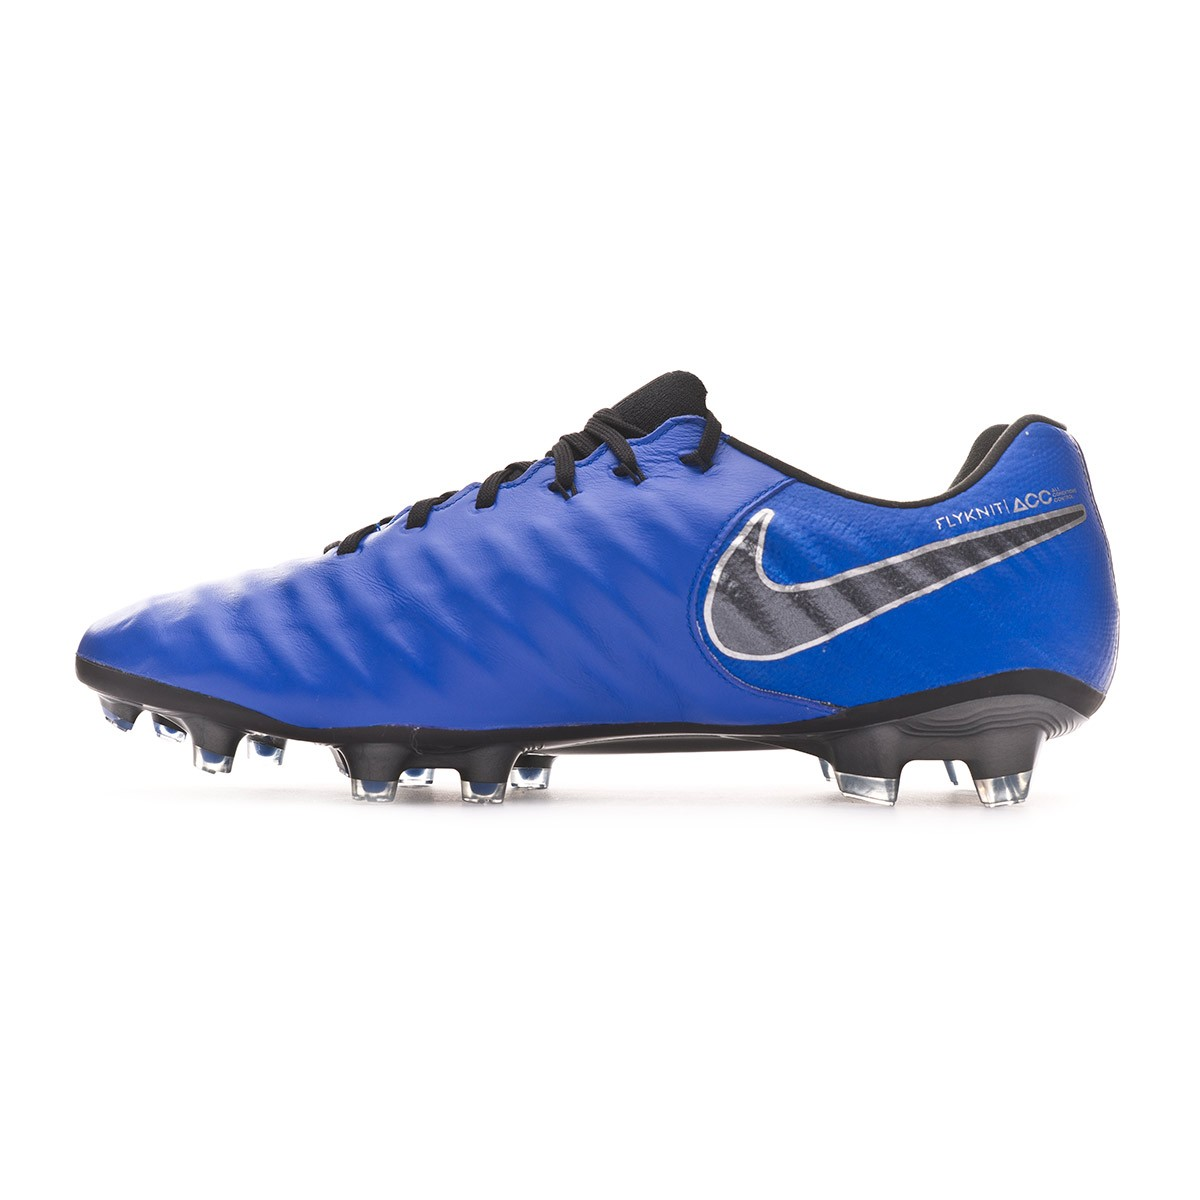 factory price 378b4 48fb4 Football Boots Nike Tiempo Legend VII Elite FG Racer blue-Black-Metallic  silver - Football store Fútbol Emotion